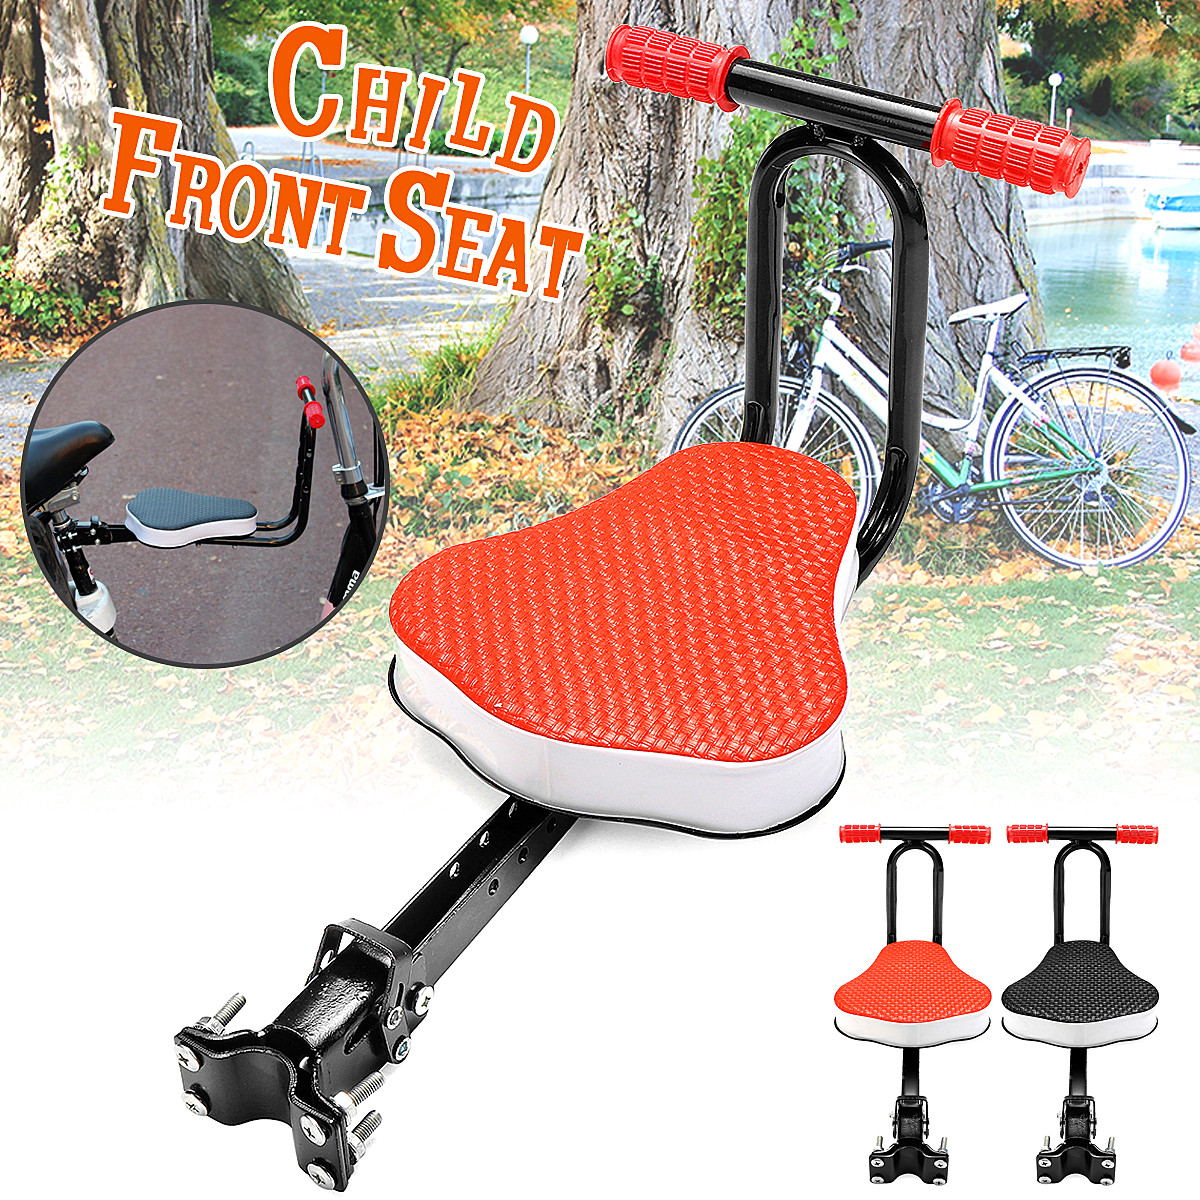 Children Bicycle Seat Quick Release Seat Bike Saddle for Kids Safety Seat with Armrest And Pedal Bike Accessories 12 14 16 kids bike children bicycle for 2 8 years boy grils ride kids bicycle with pedal toys children bike colorful adult